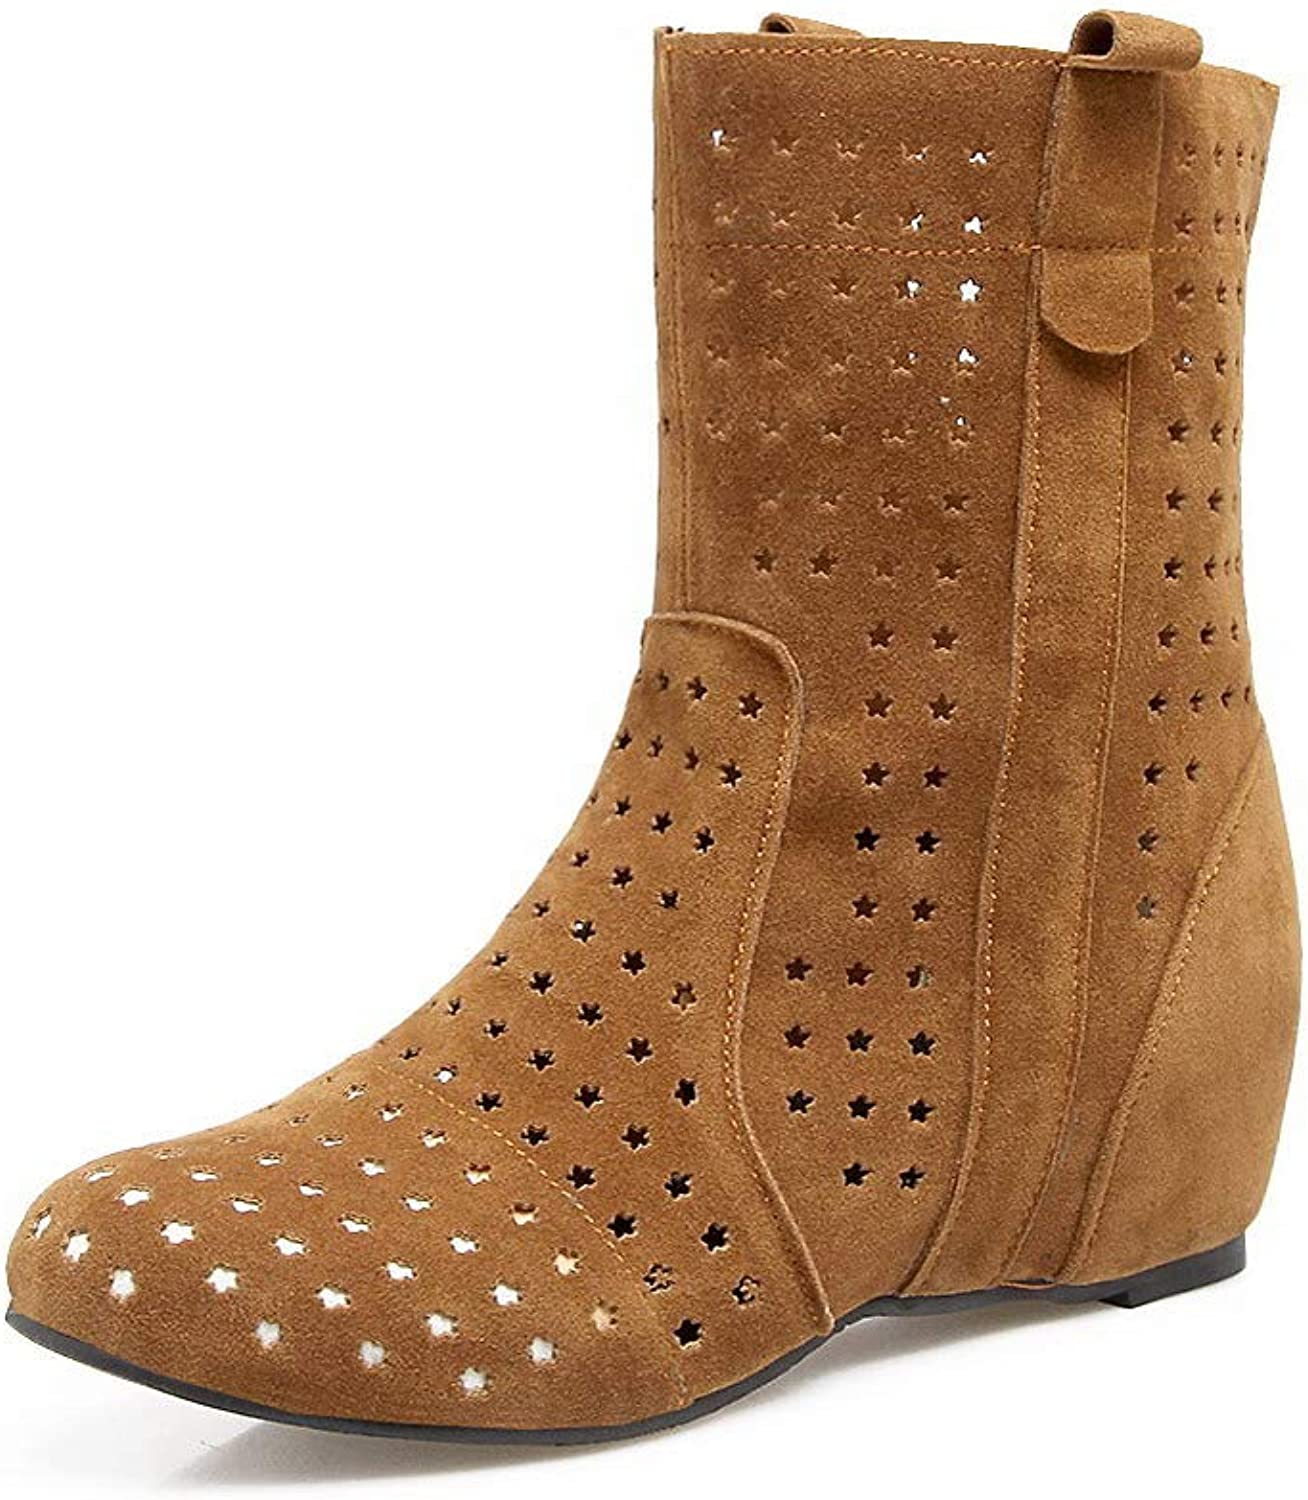 WeiPoot Women's Solid Kitten-Heels Round-Toe Frosted Pull-On Boots, EGHXH014358